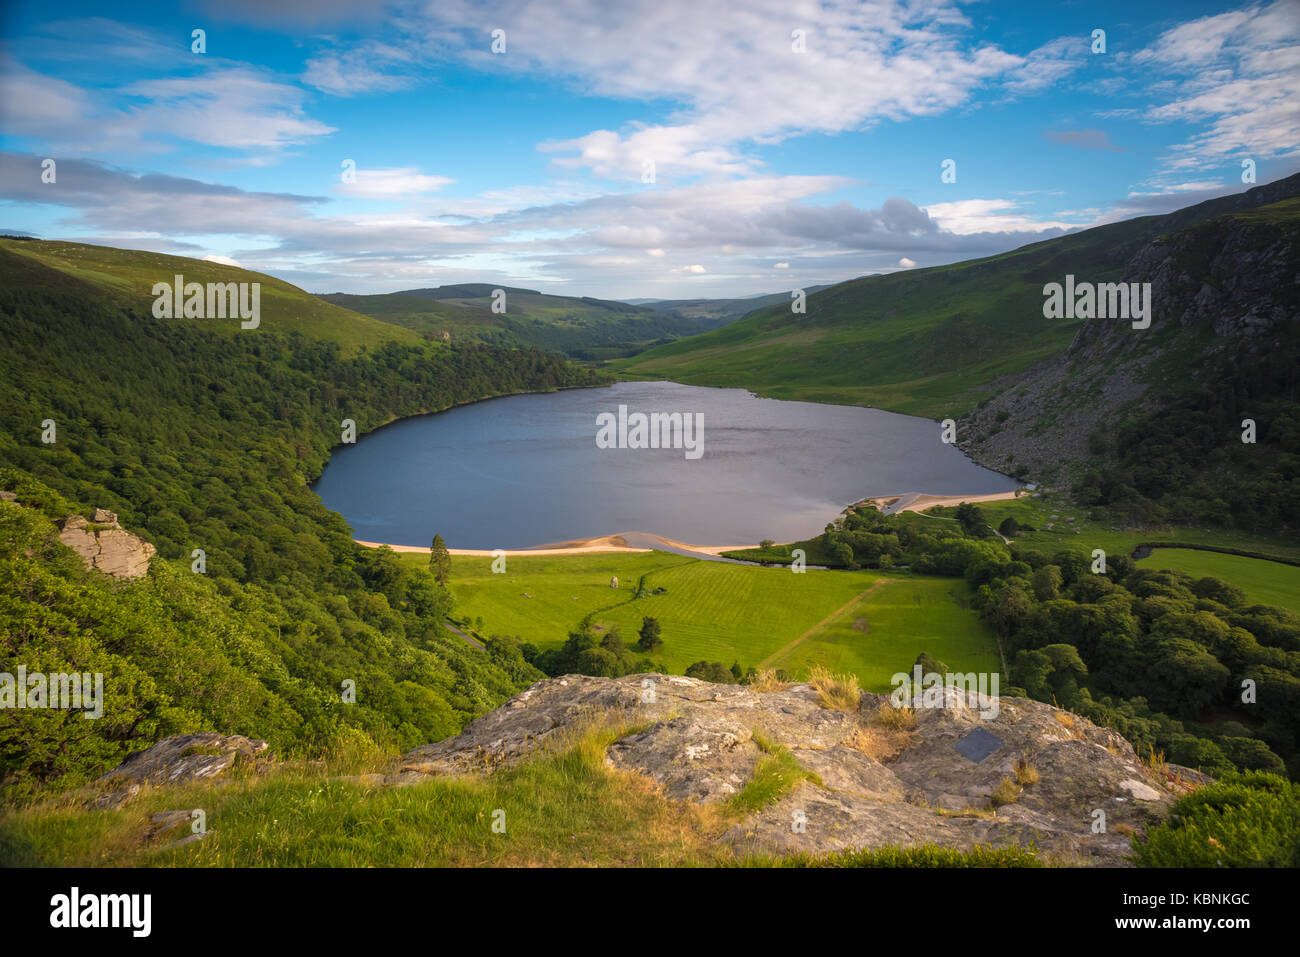 Lough Tay in Wicklow Mountains, Ireland - Stock Image